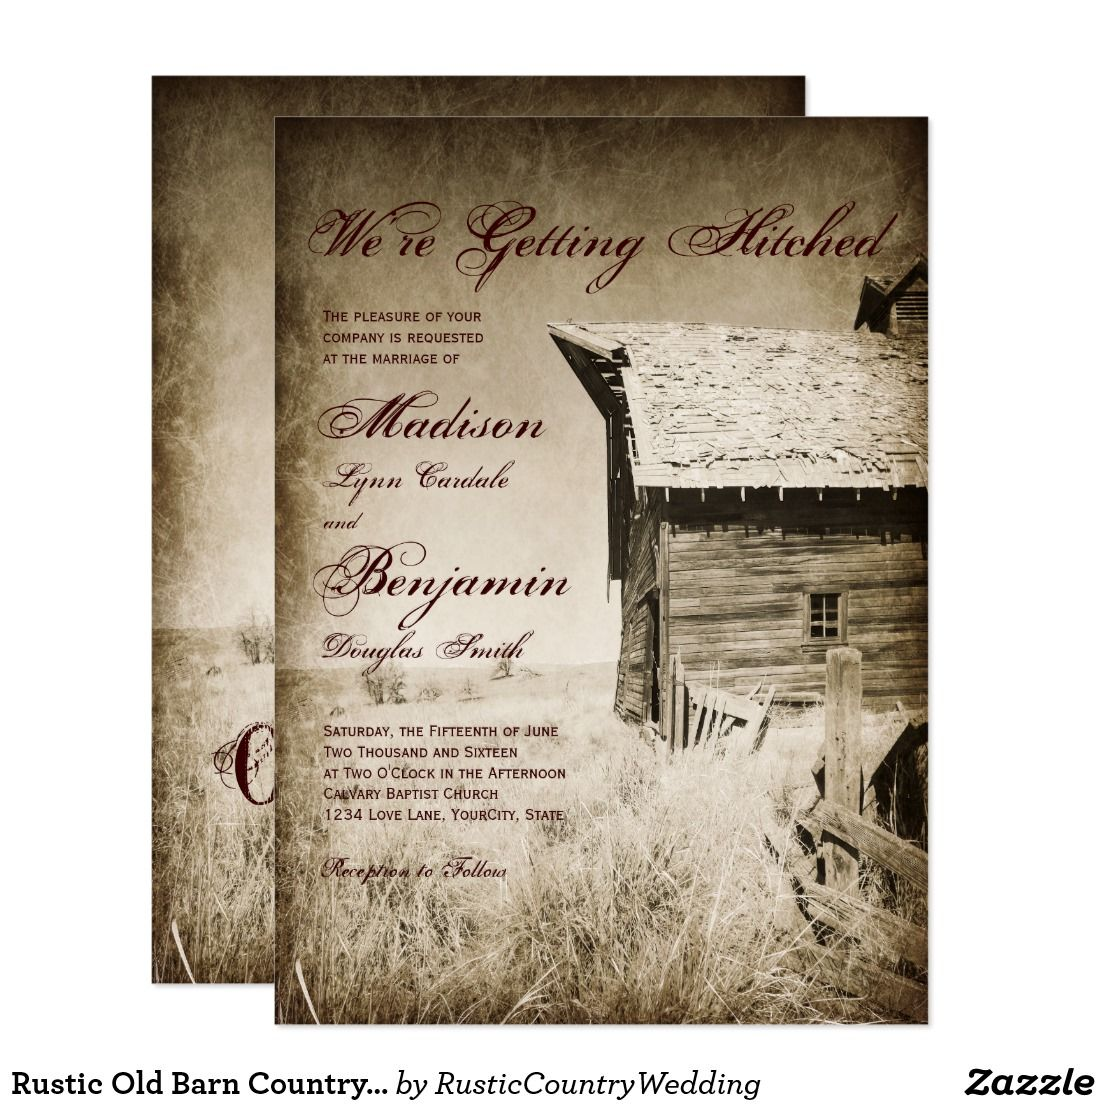 Rustic Old Barn Country Wedding Invitations | Country wedding ...